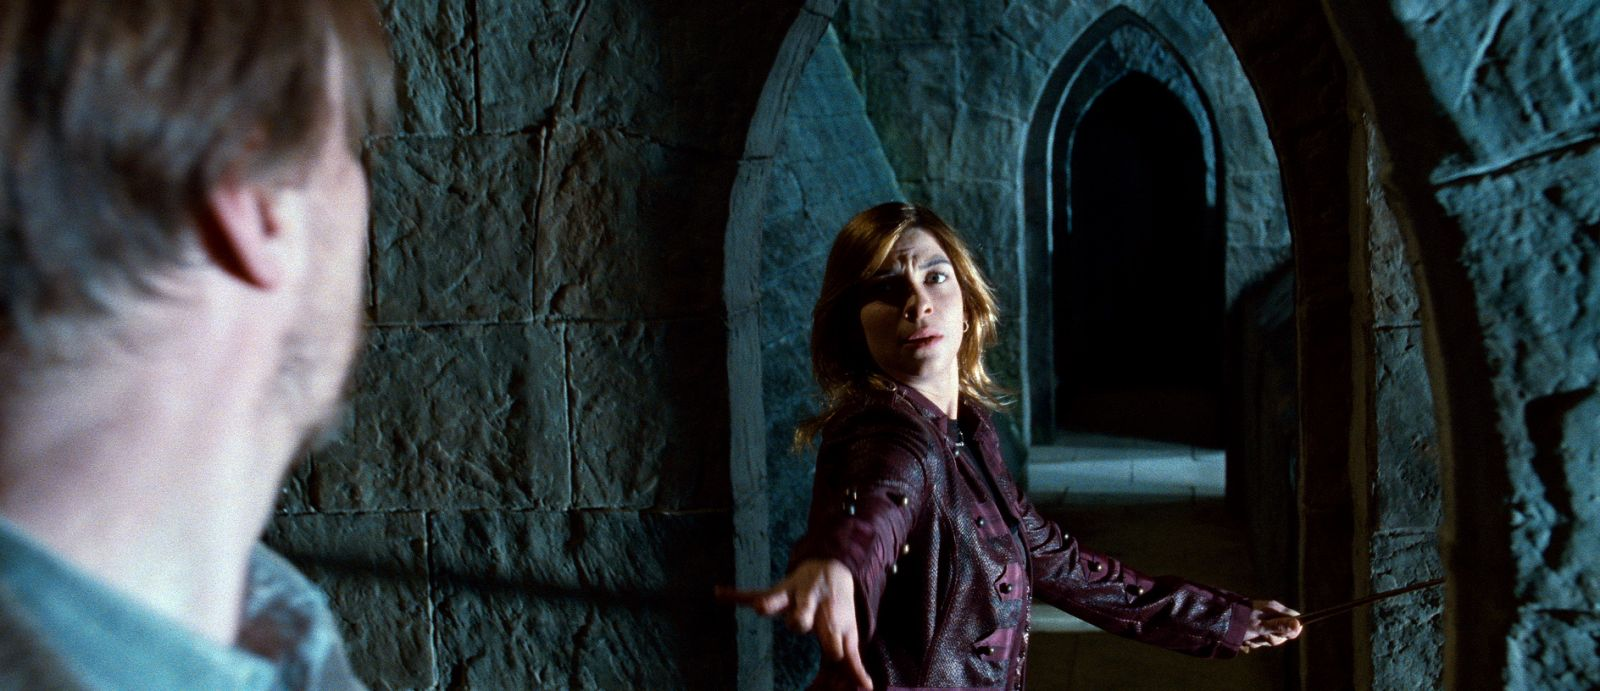 Mind Lupin S Son S Name Tonks Lupin Until Very End 2010 Harry Potter Deathly Hallows P2 011 Tonks houzz-02 Tonks And Lupin